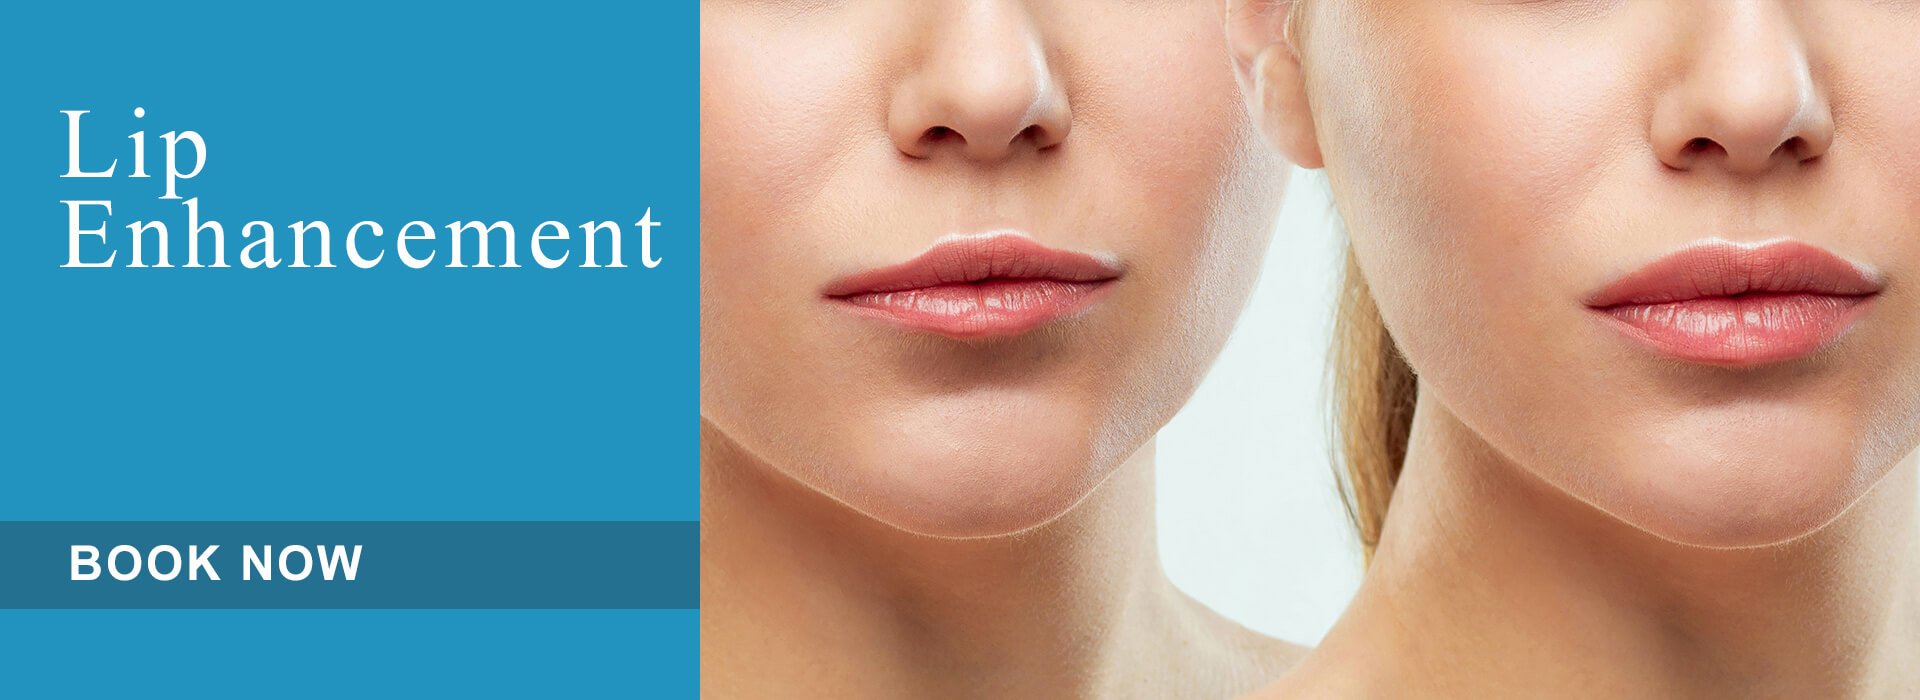 Lip Enhancement Aesthetic Treatment